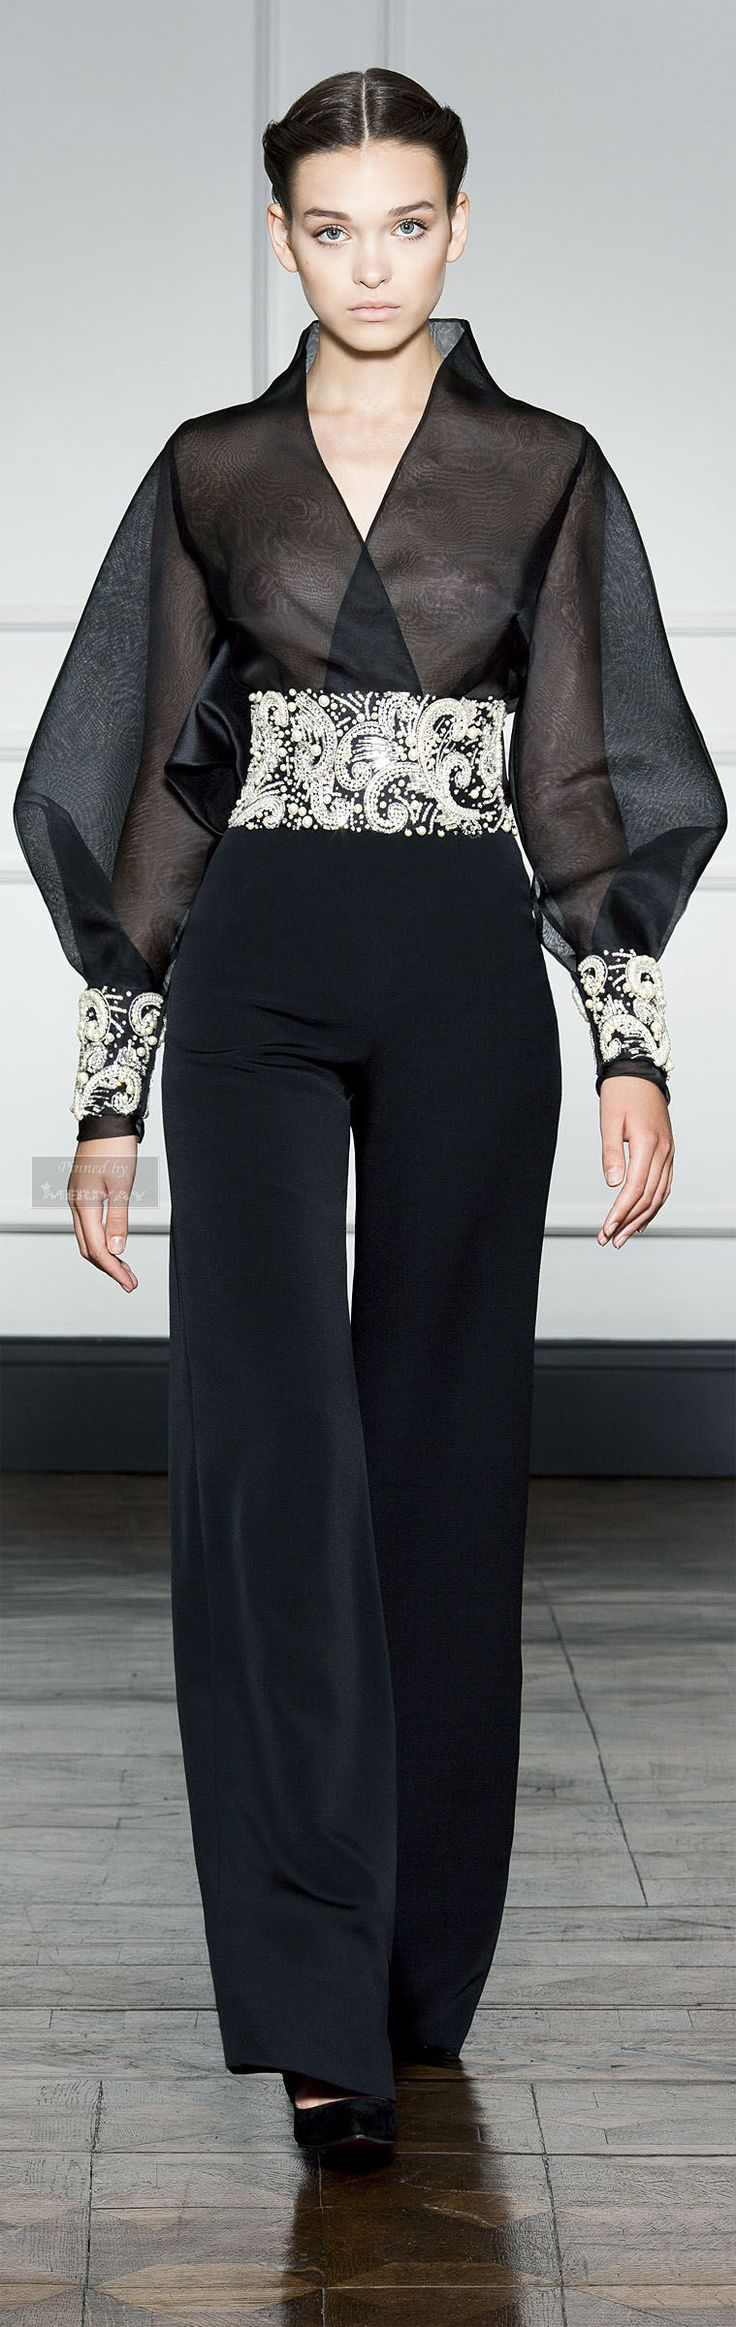 """this is what came up when I searched for """"kimono jumpsuit"""" and I kinda like it...especially the nipples. am I insane?"""